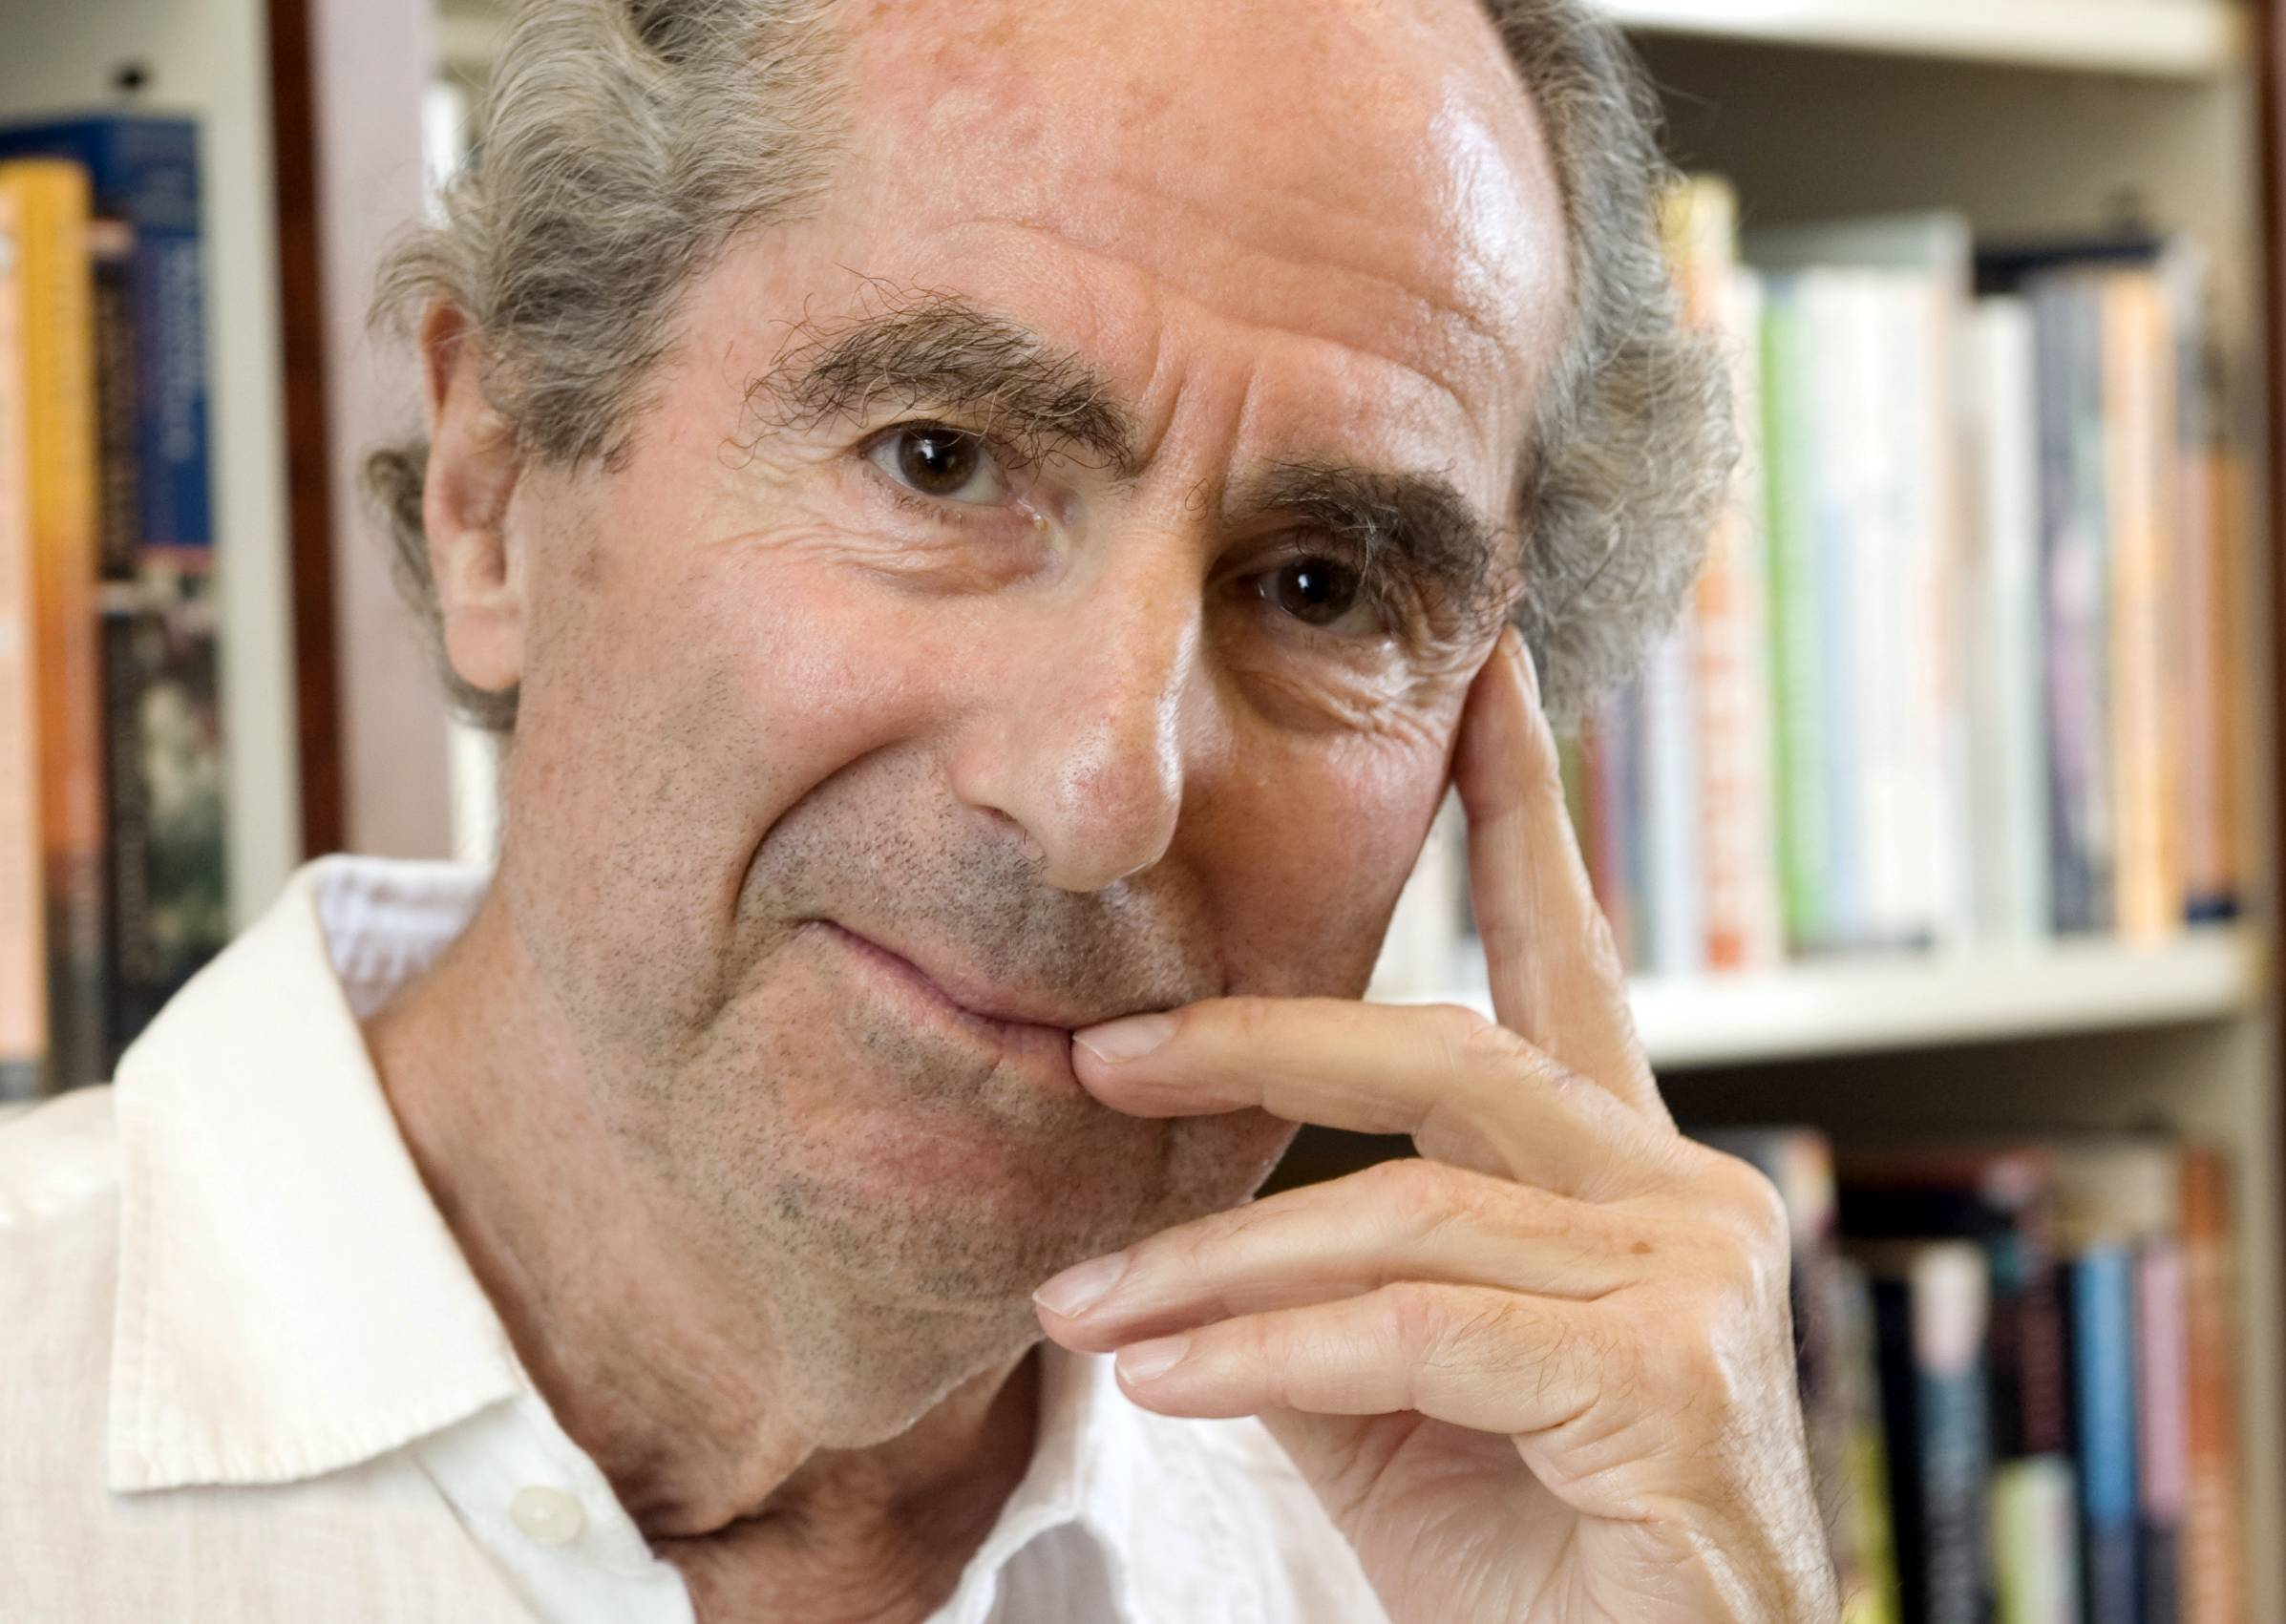 In what may be his last remarks at a public gathering, author Philip Roth has accepted Yaddo's first ever Artist Medal Wednesday May 14, 2014 and spoken gratefully of his time at the venerable retreat in the 1960s.